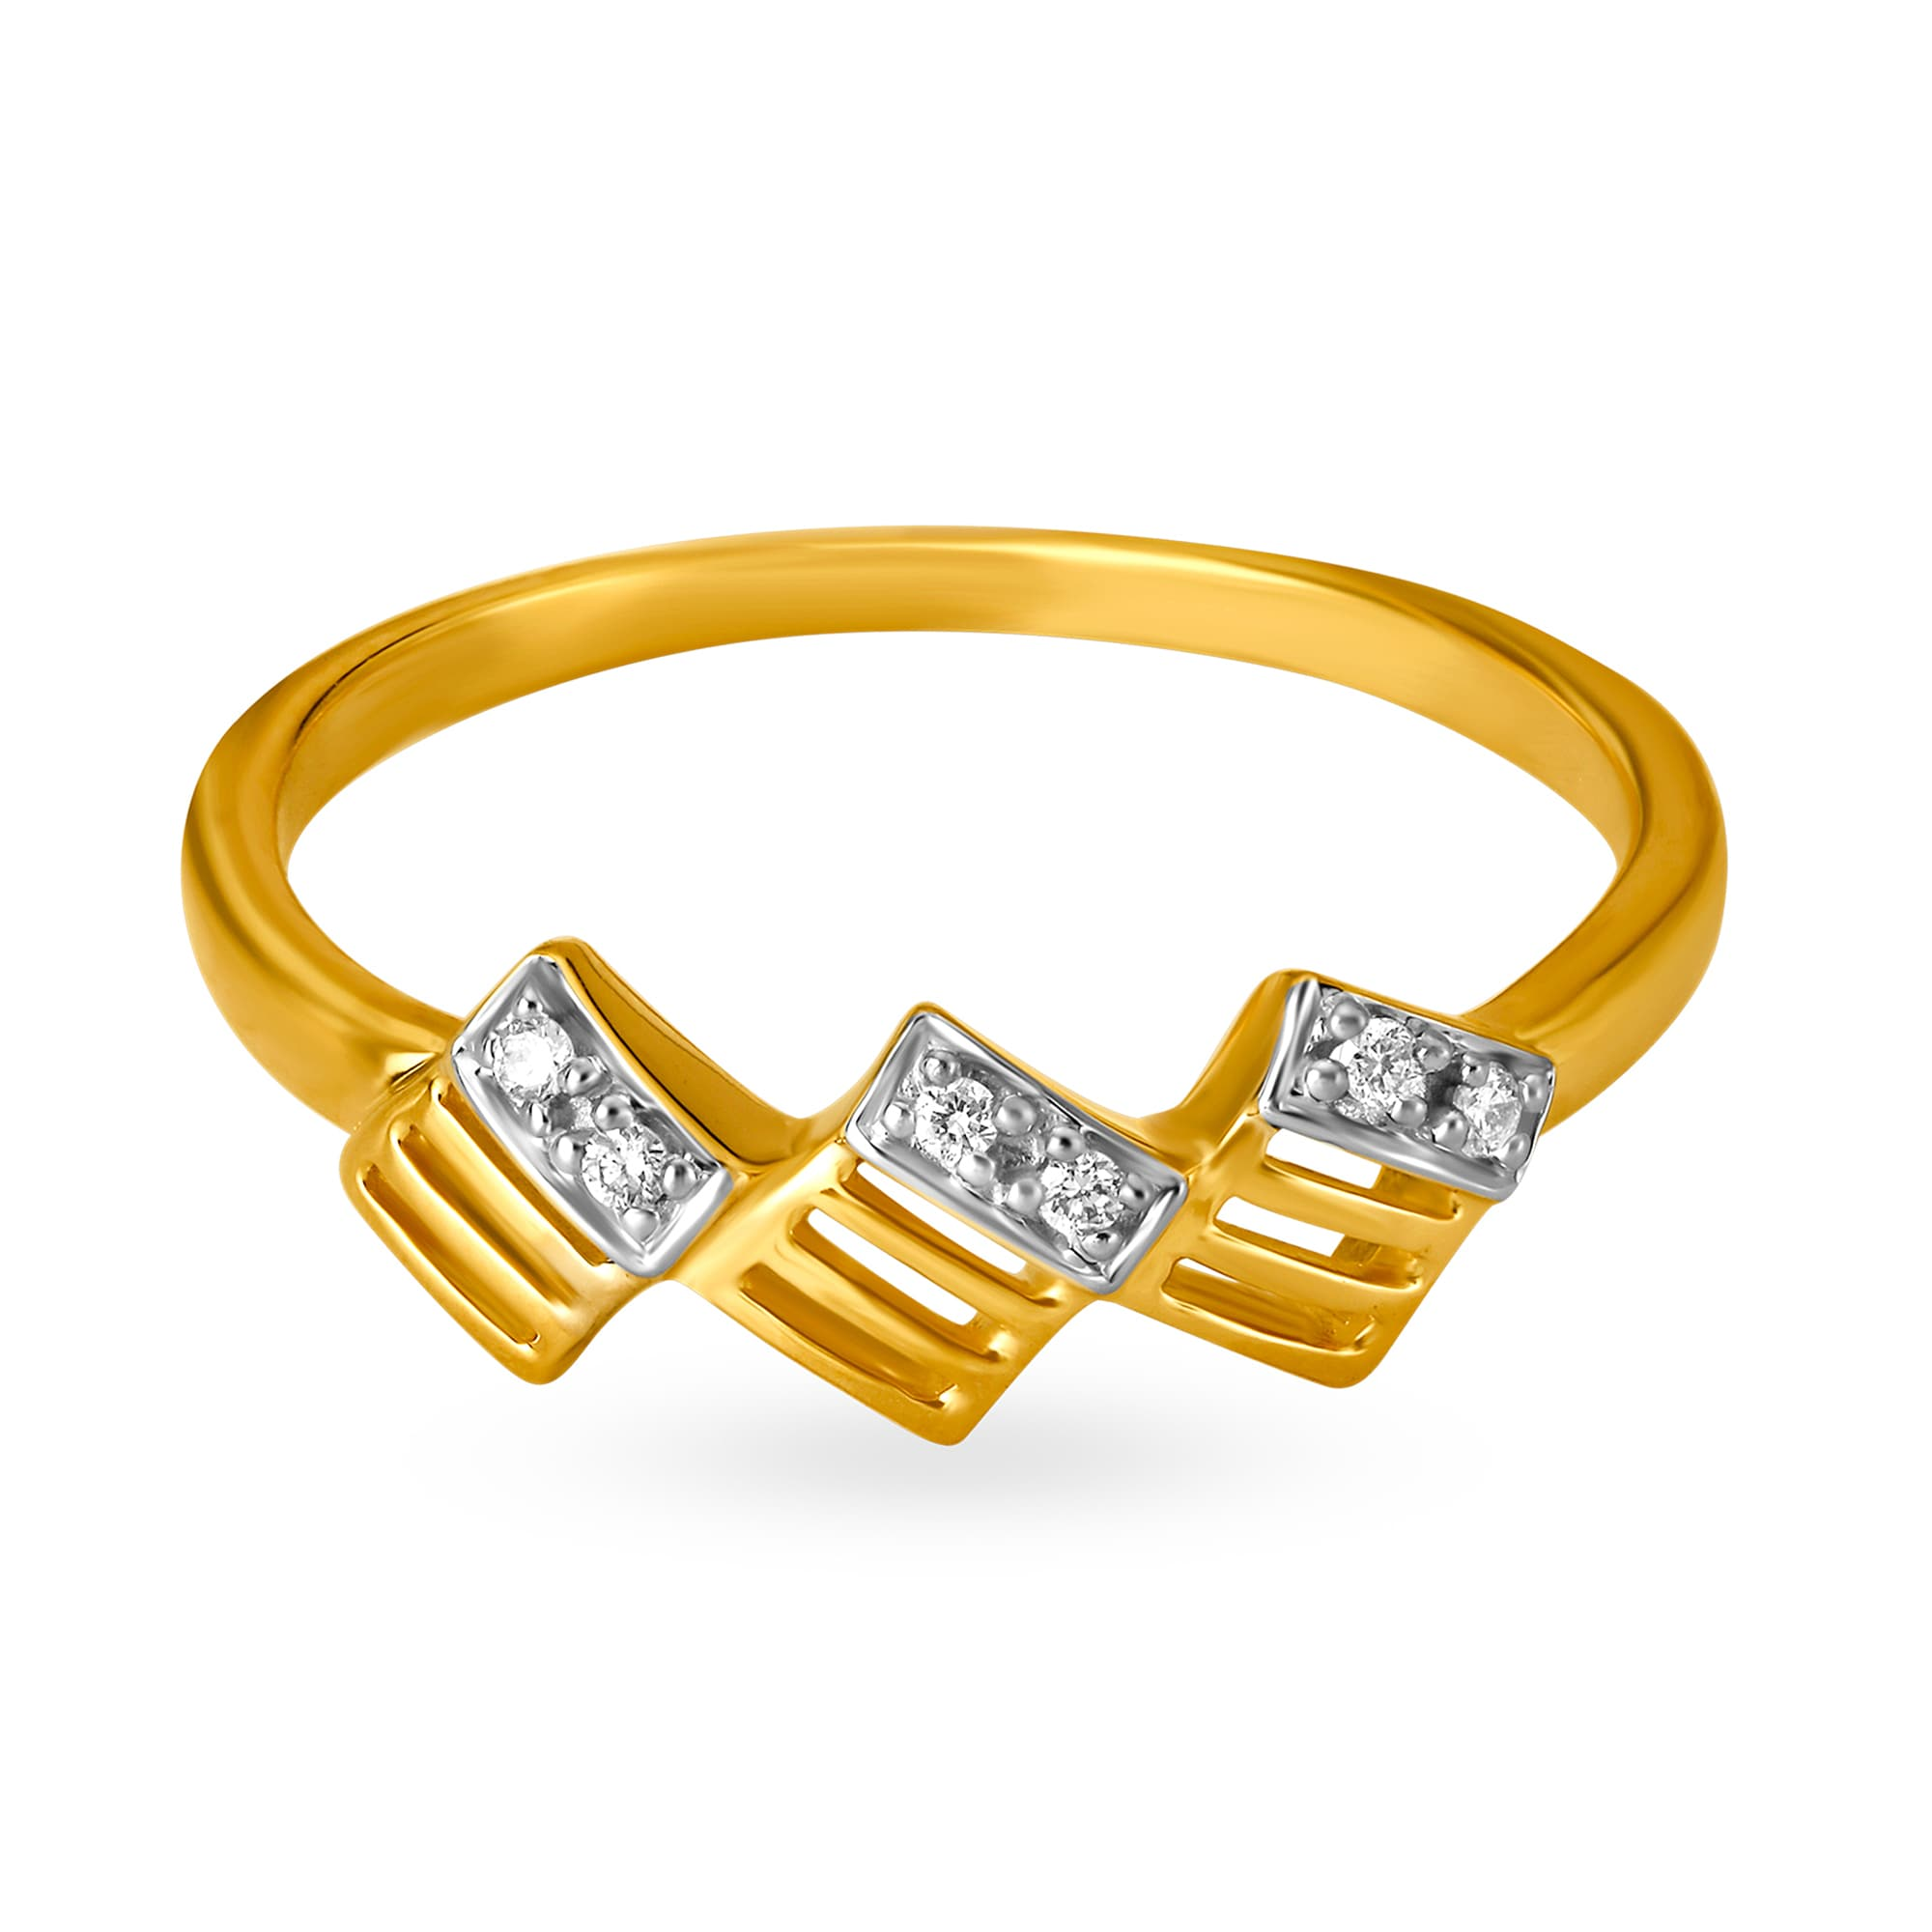 Mia by Tanishq Friends of Bride 14KT Yellow Gold Diamond Finger Ring with  Slanted Square Design